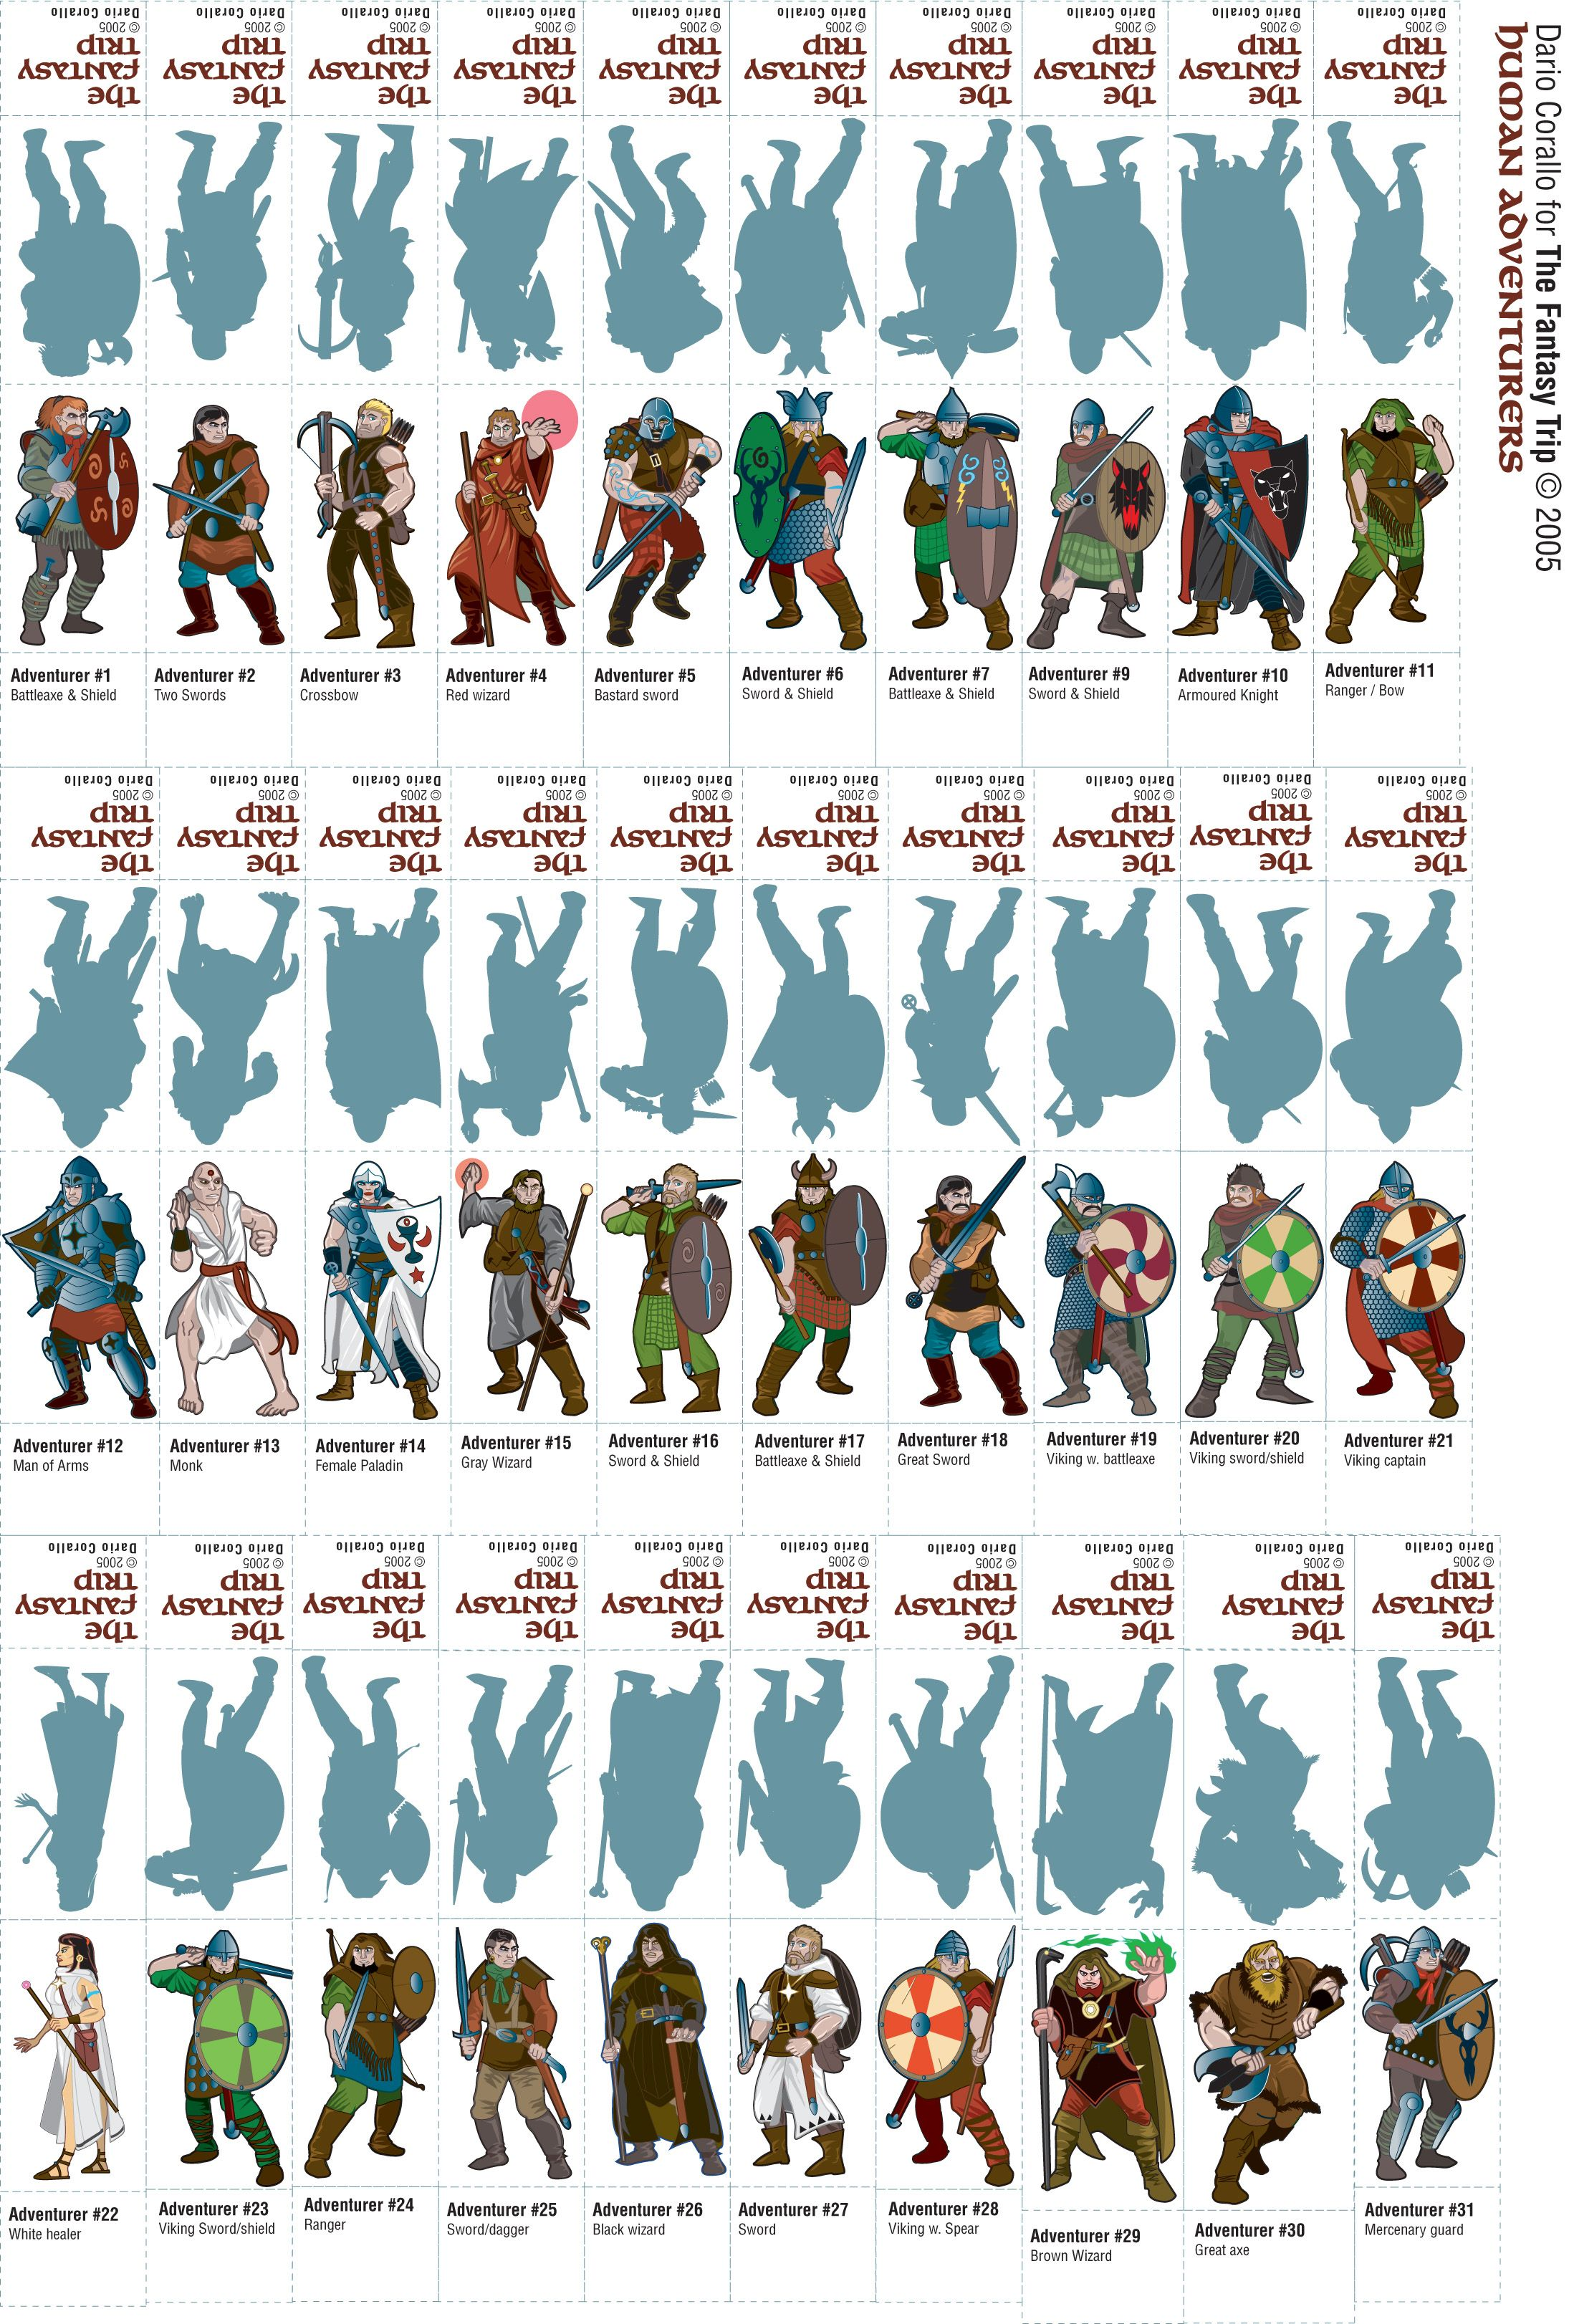 Pin by Alex Anderson on gamer in 2019 | Dungeons, dragons